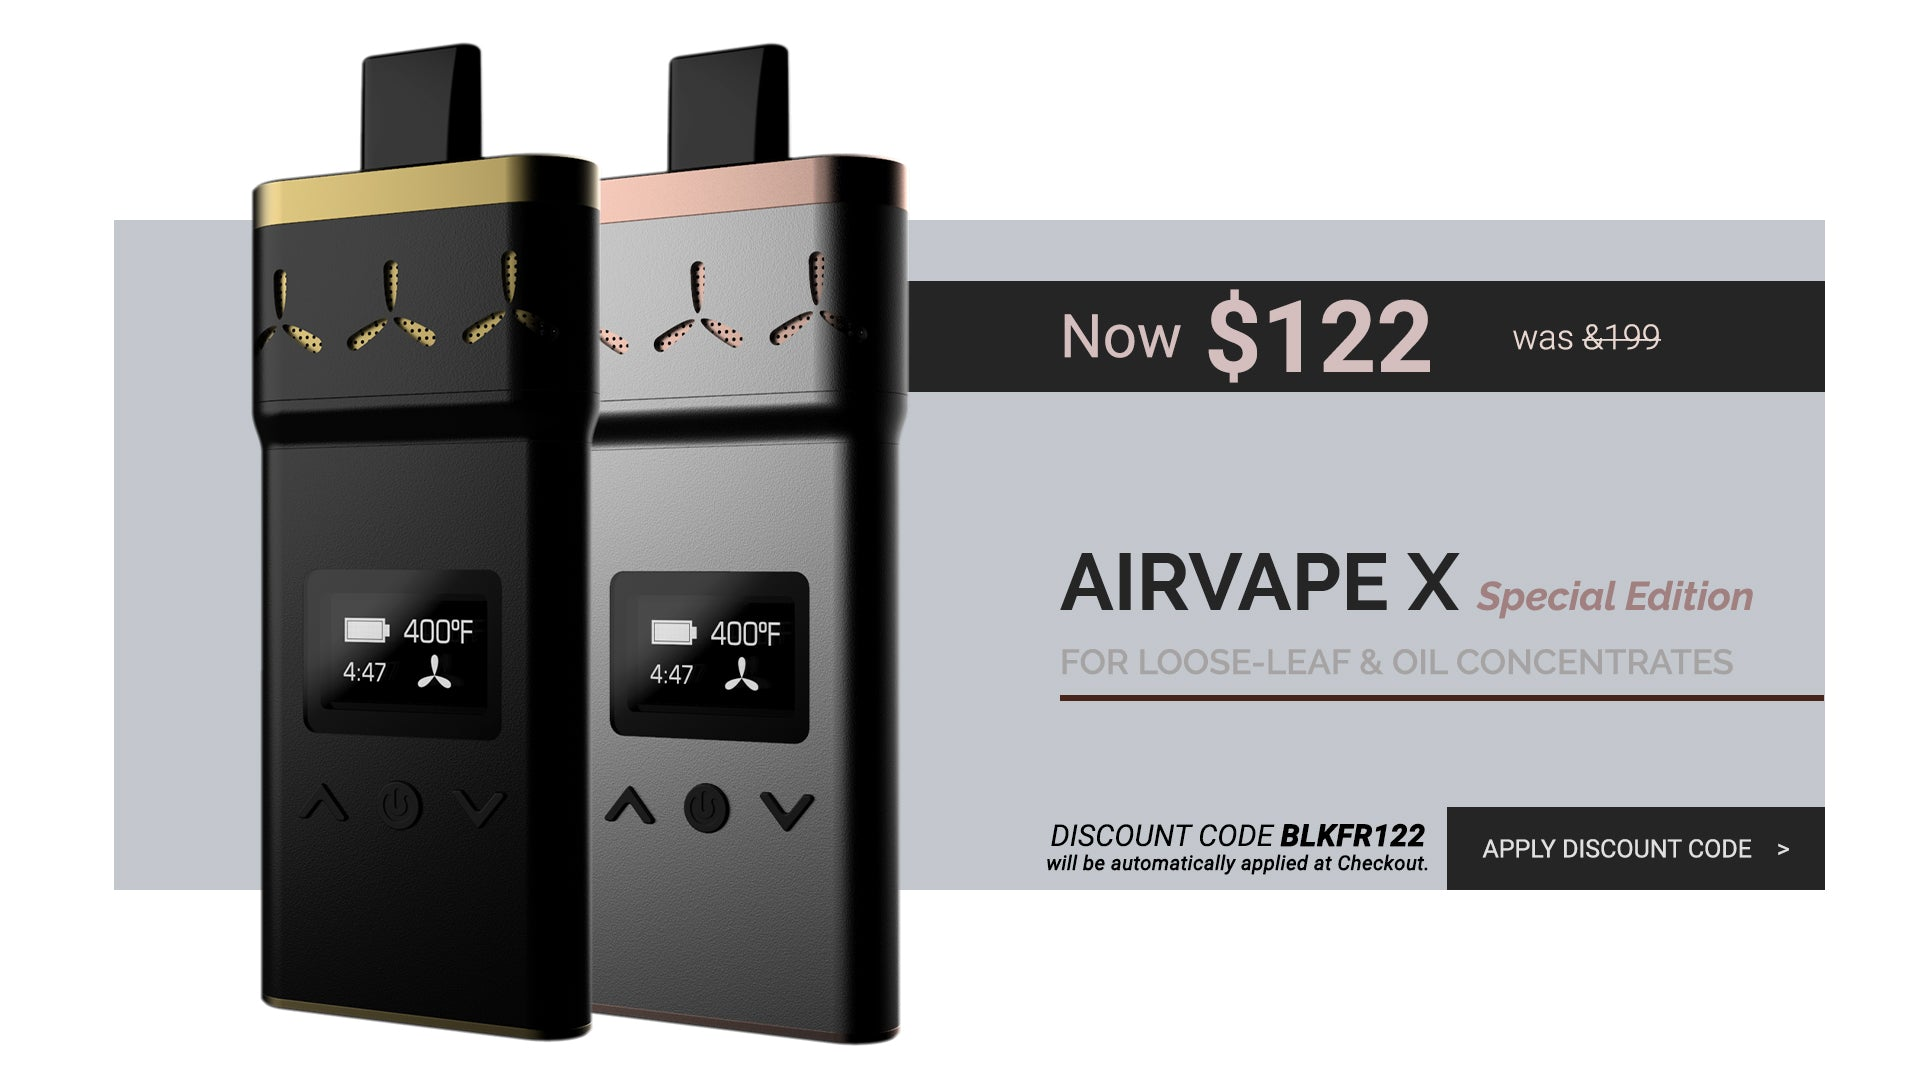 AirVape X Special Edition